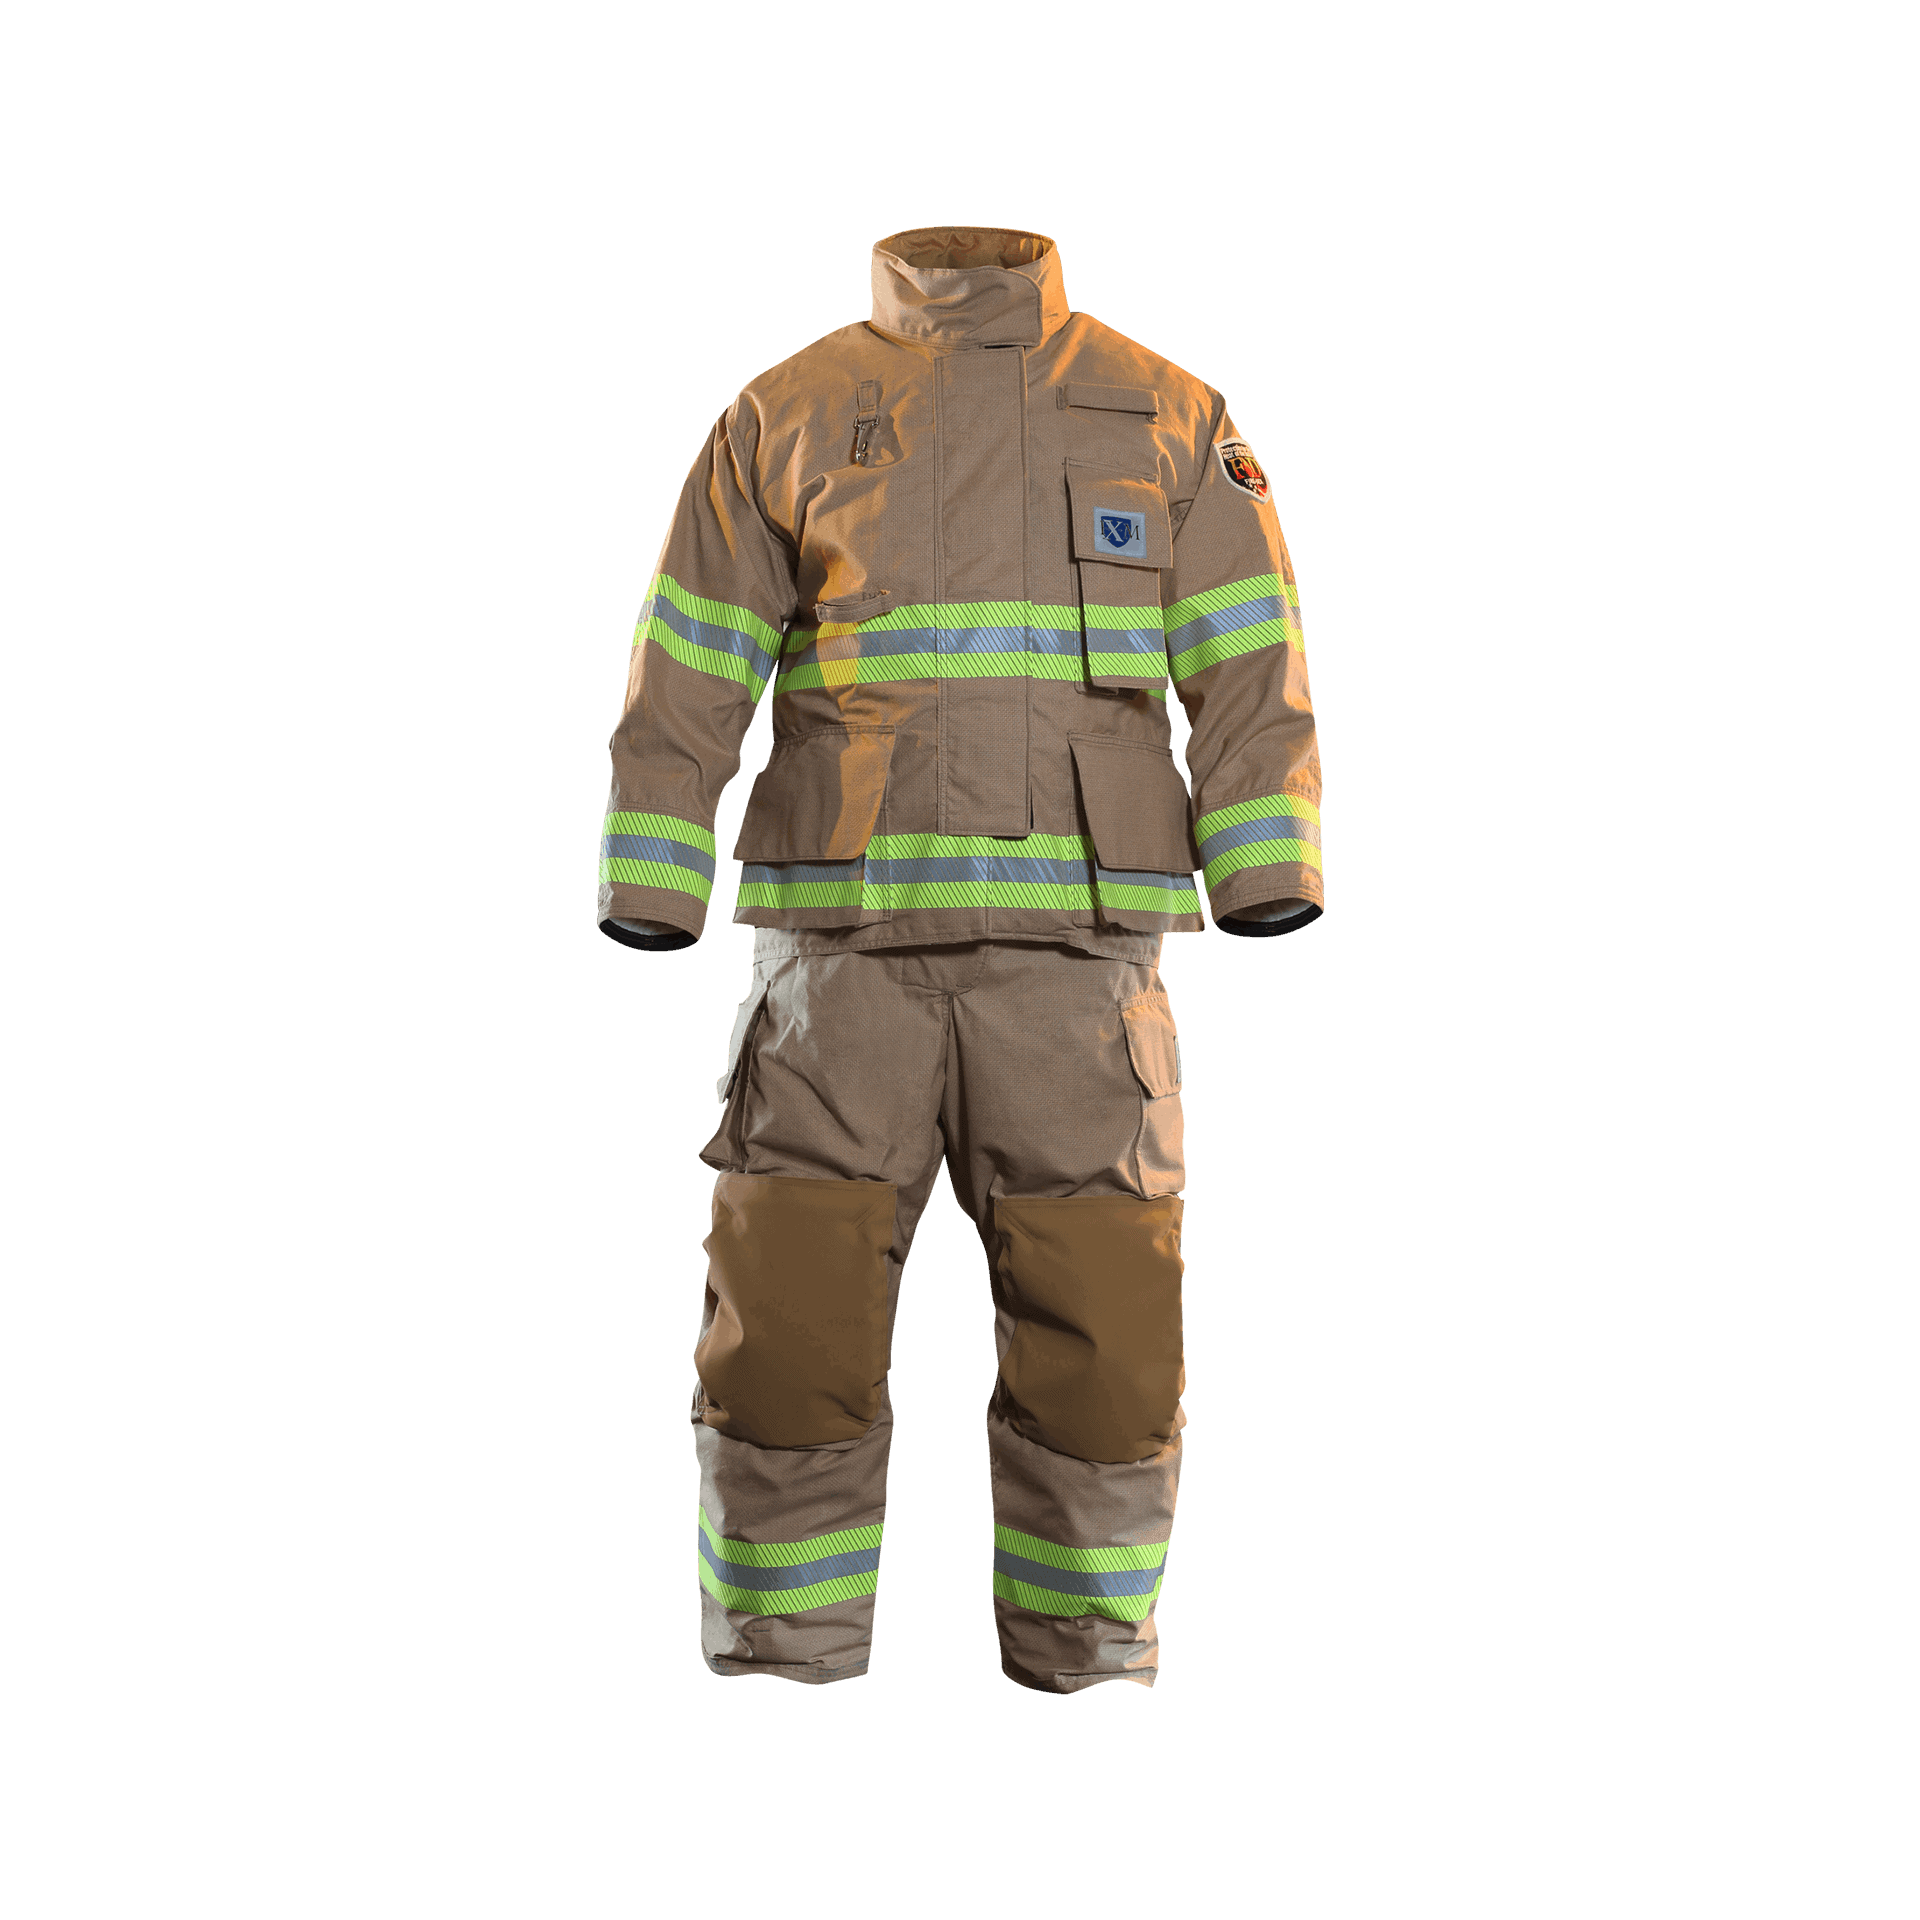 FXM Turnout Gear Full Front View